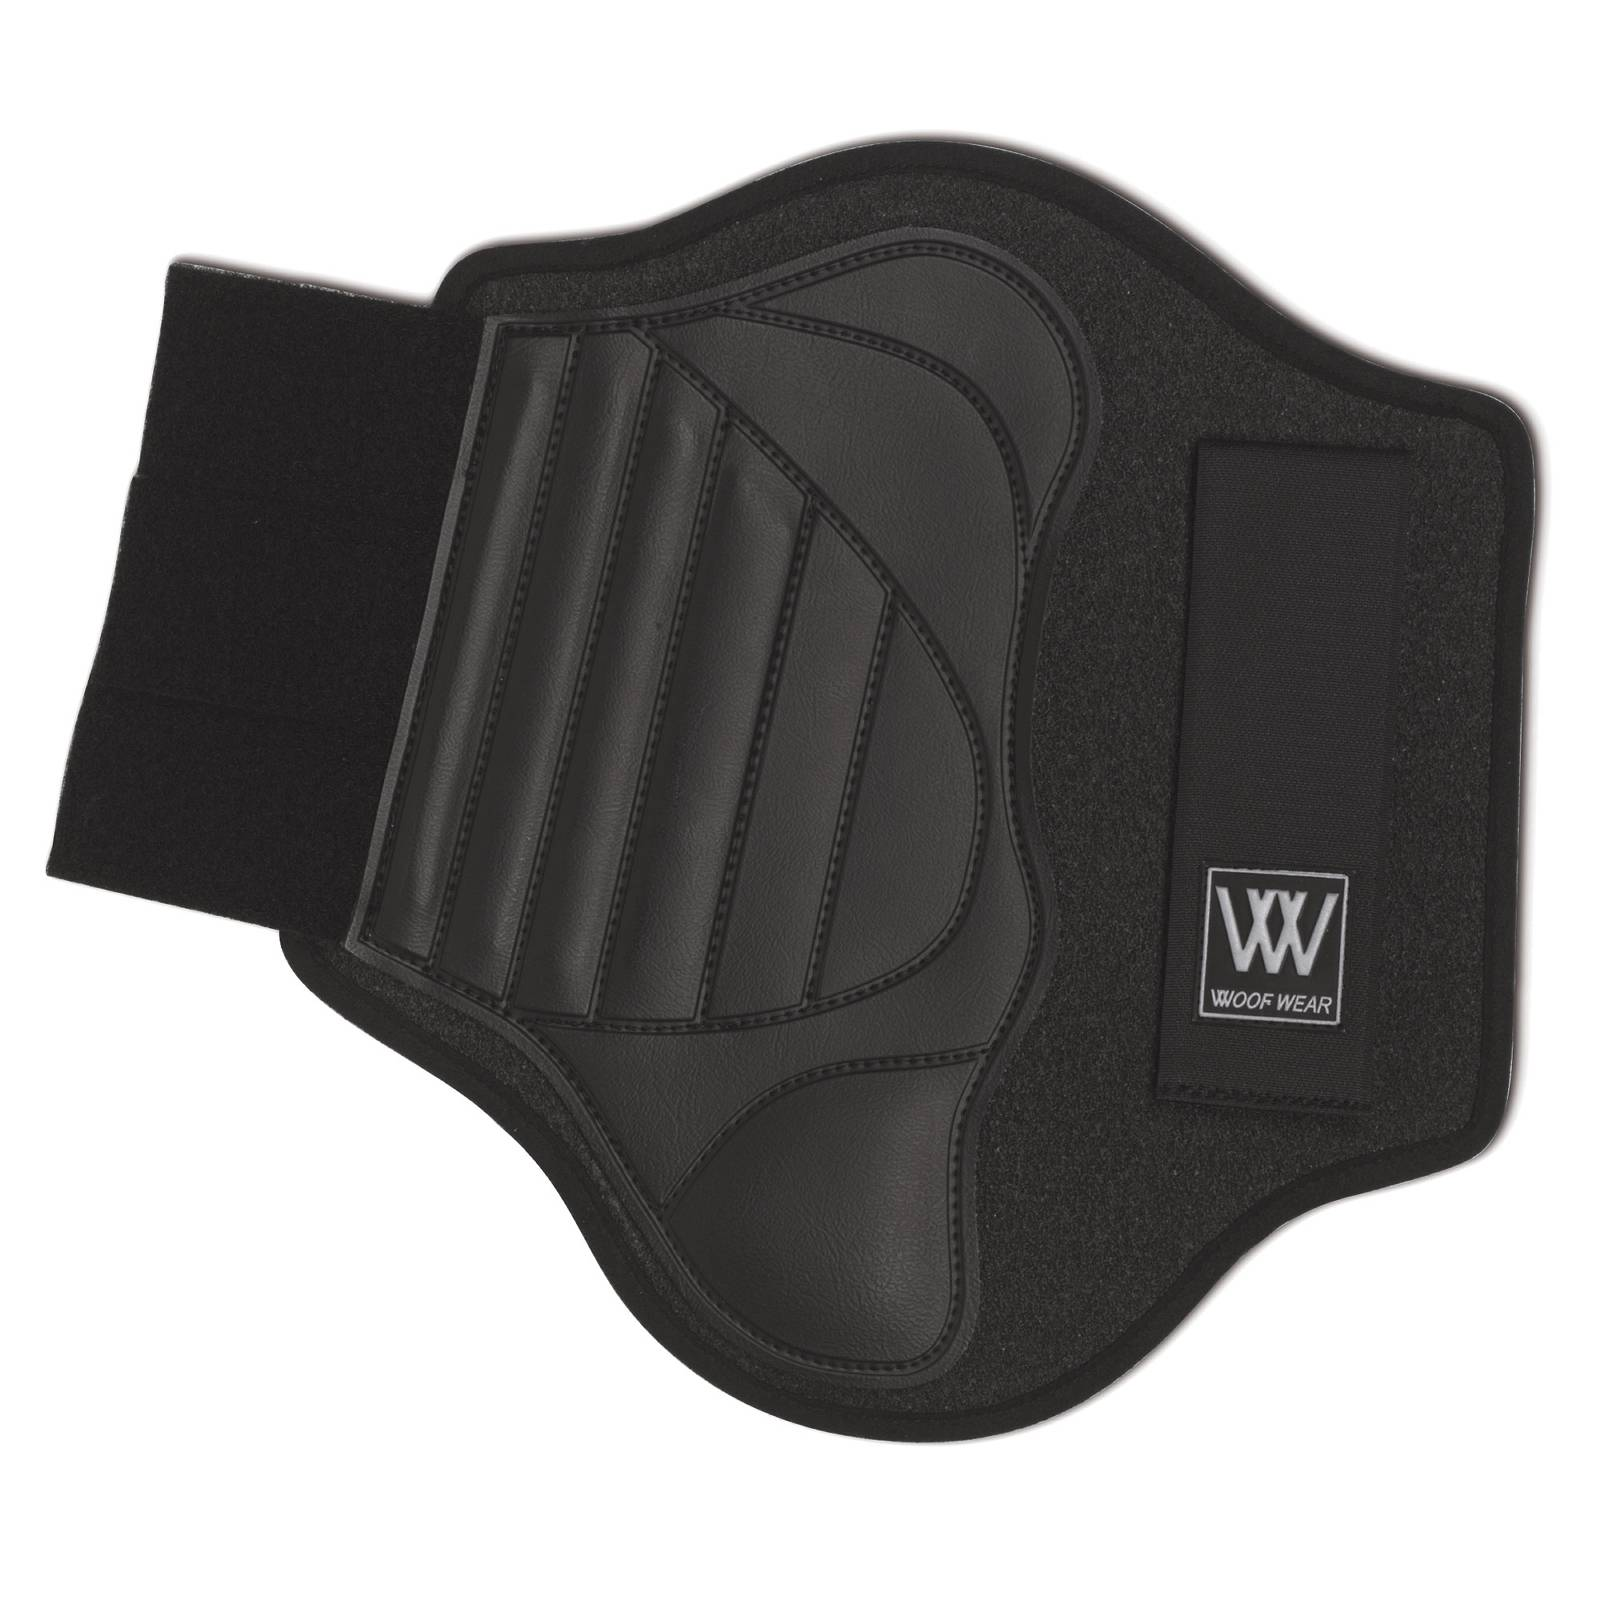 WOOF WEAR Pro Ultra Hind Boots